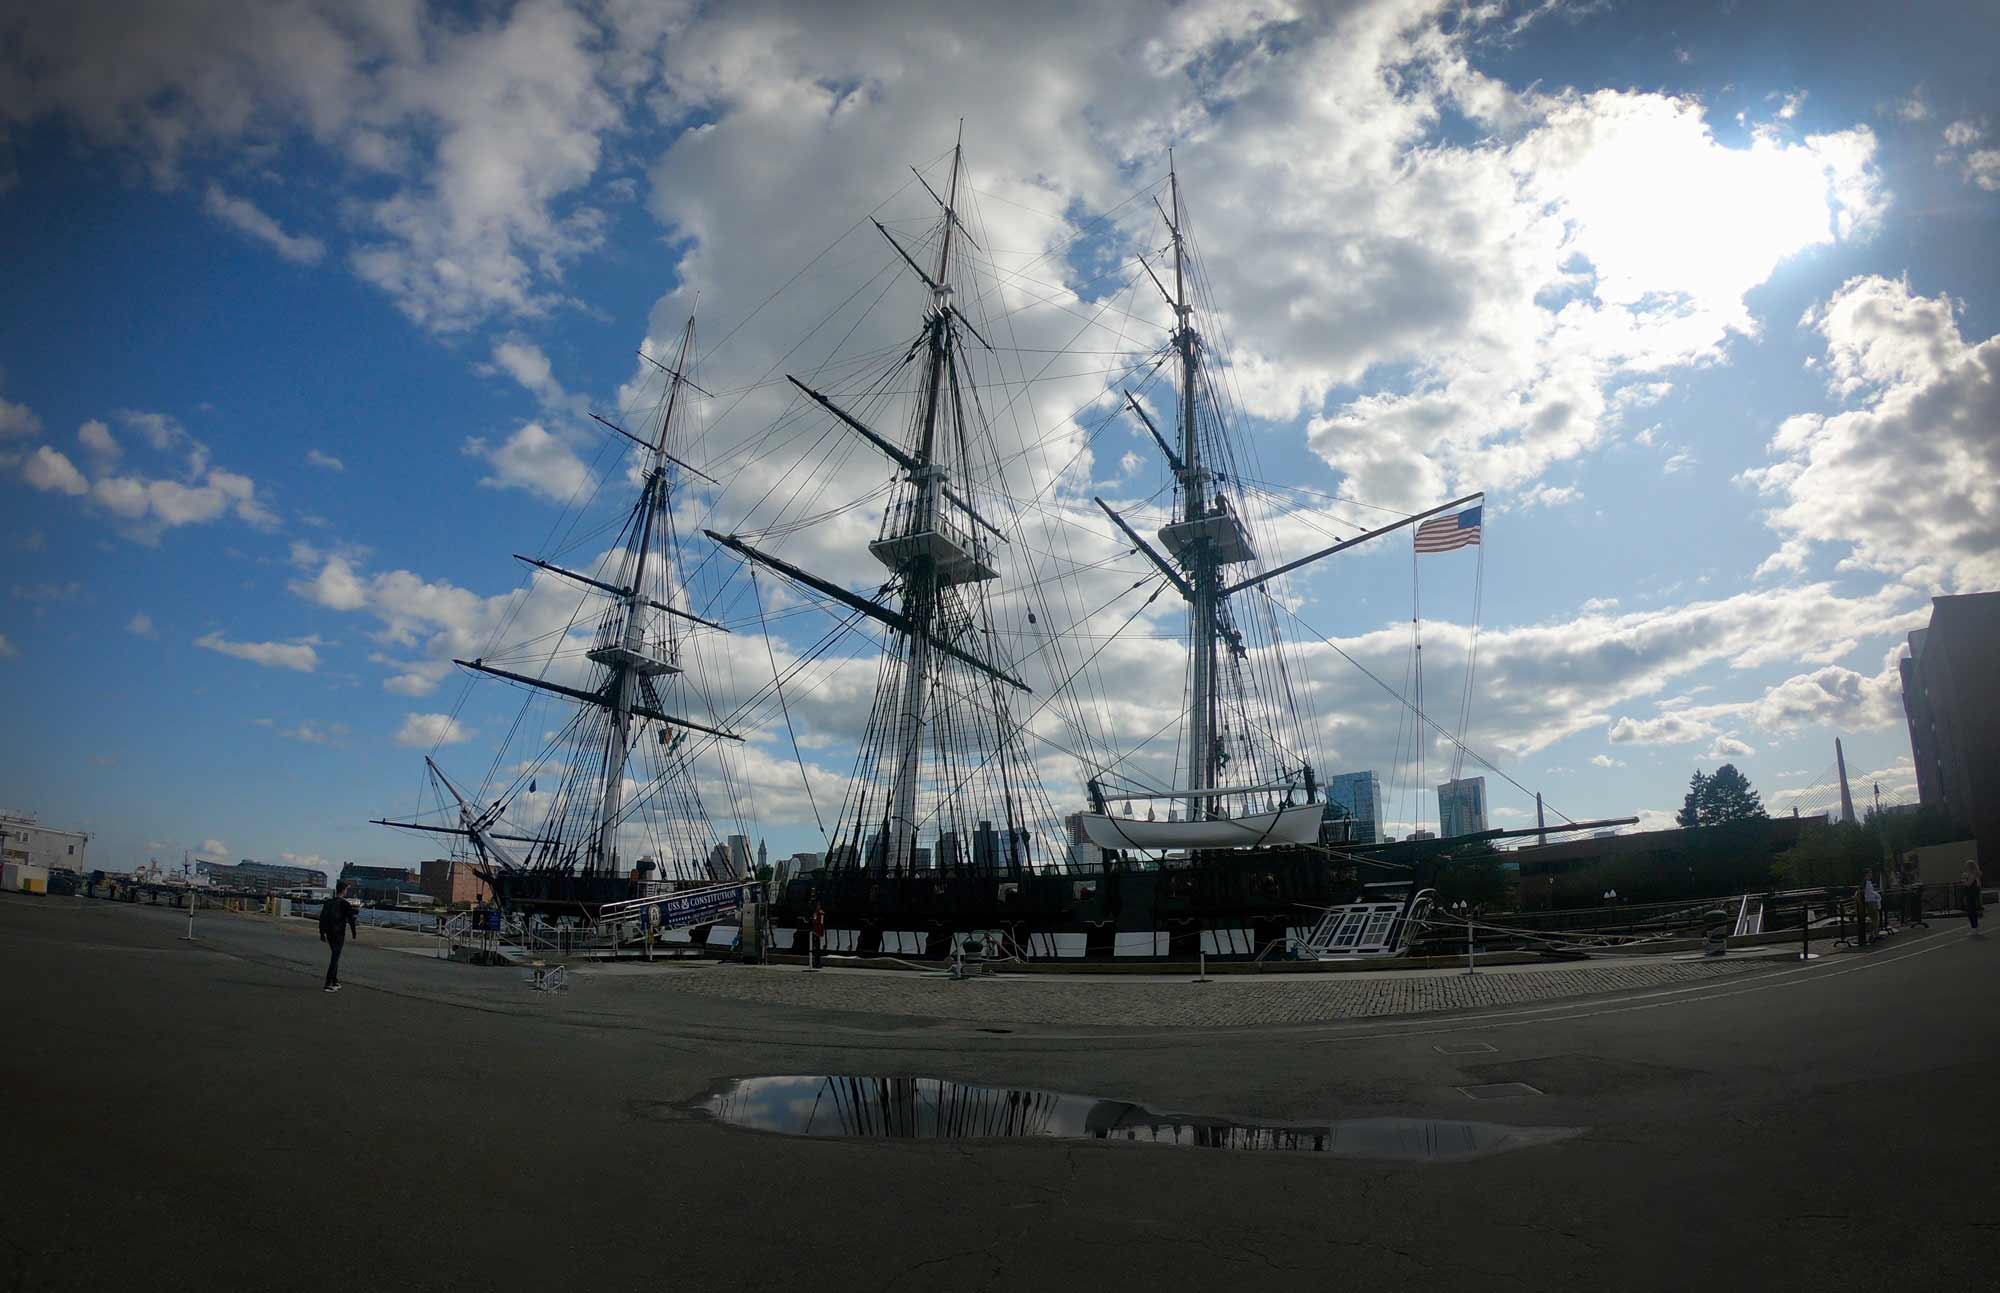 USS Constitution in the Charleston Navy Yard on the Freedom Trail in Boston, Massachusetts